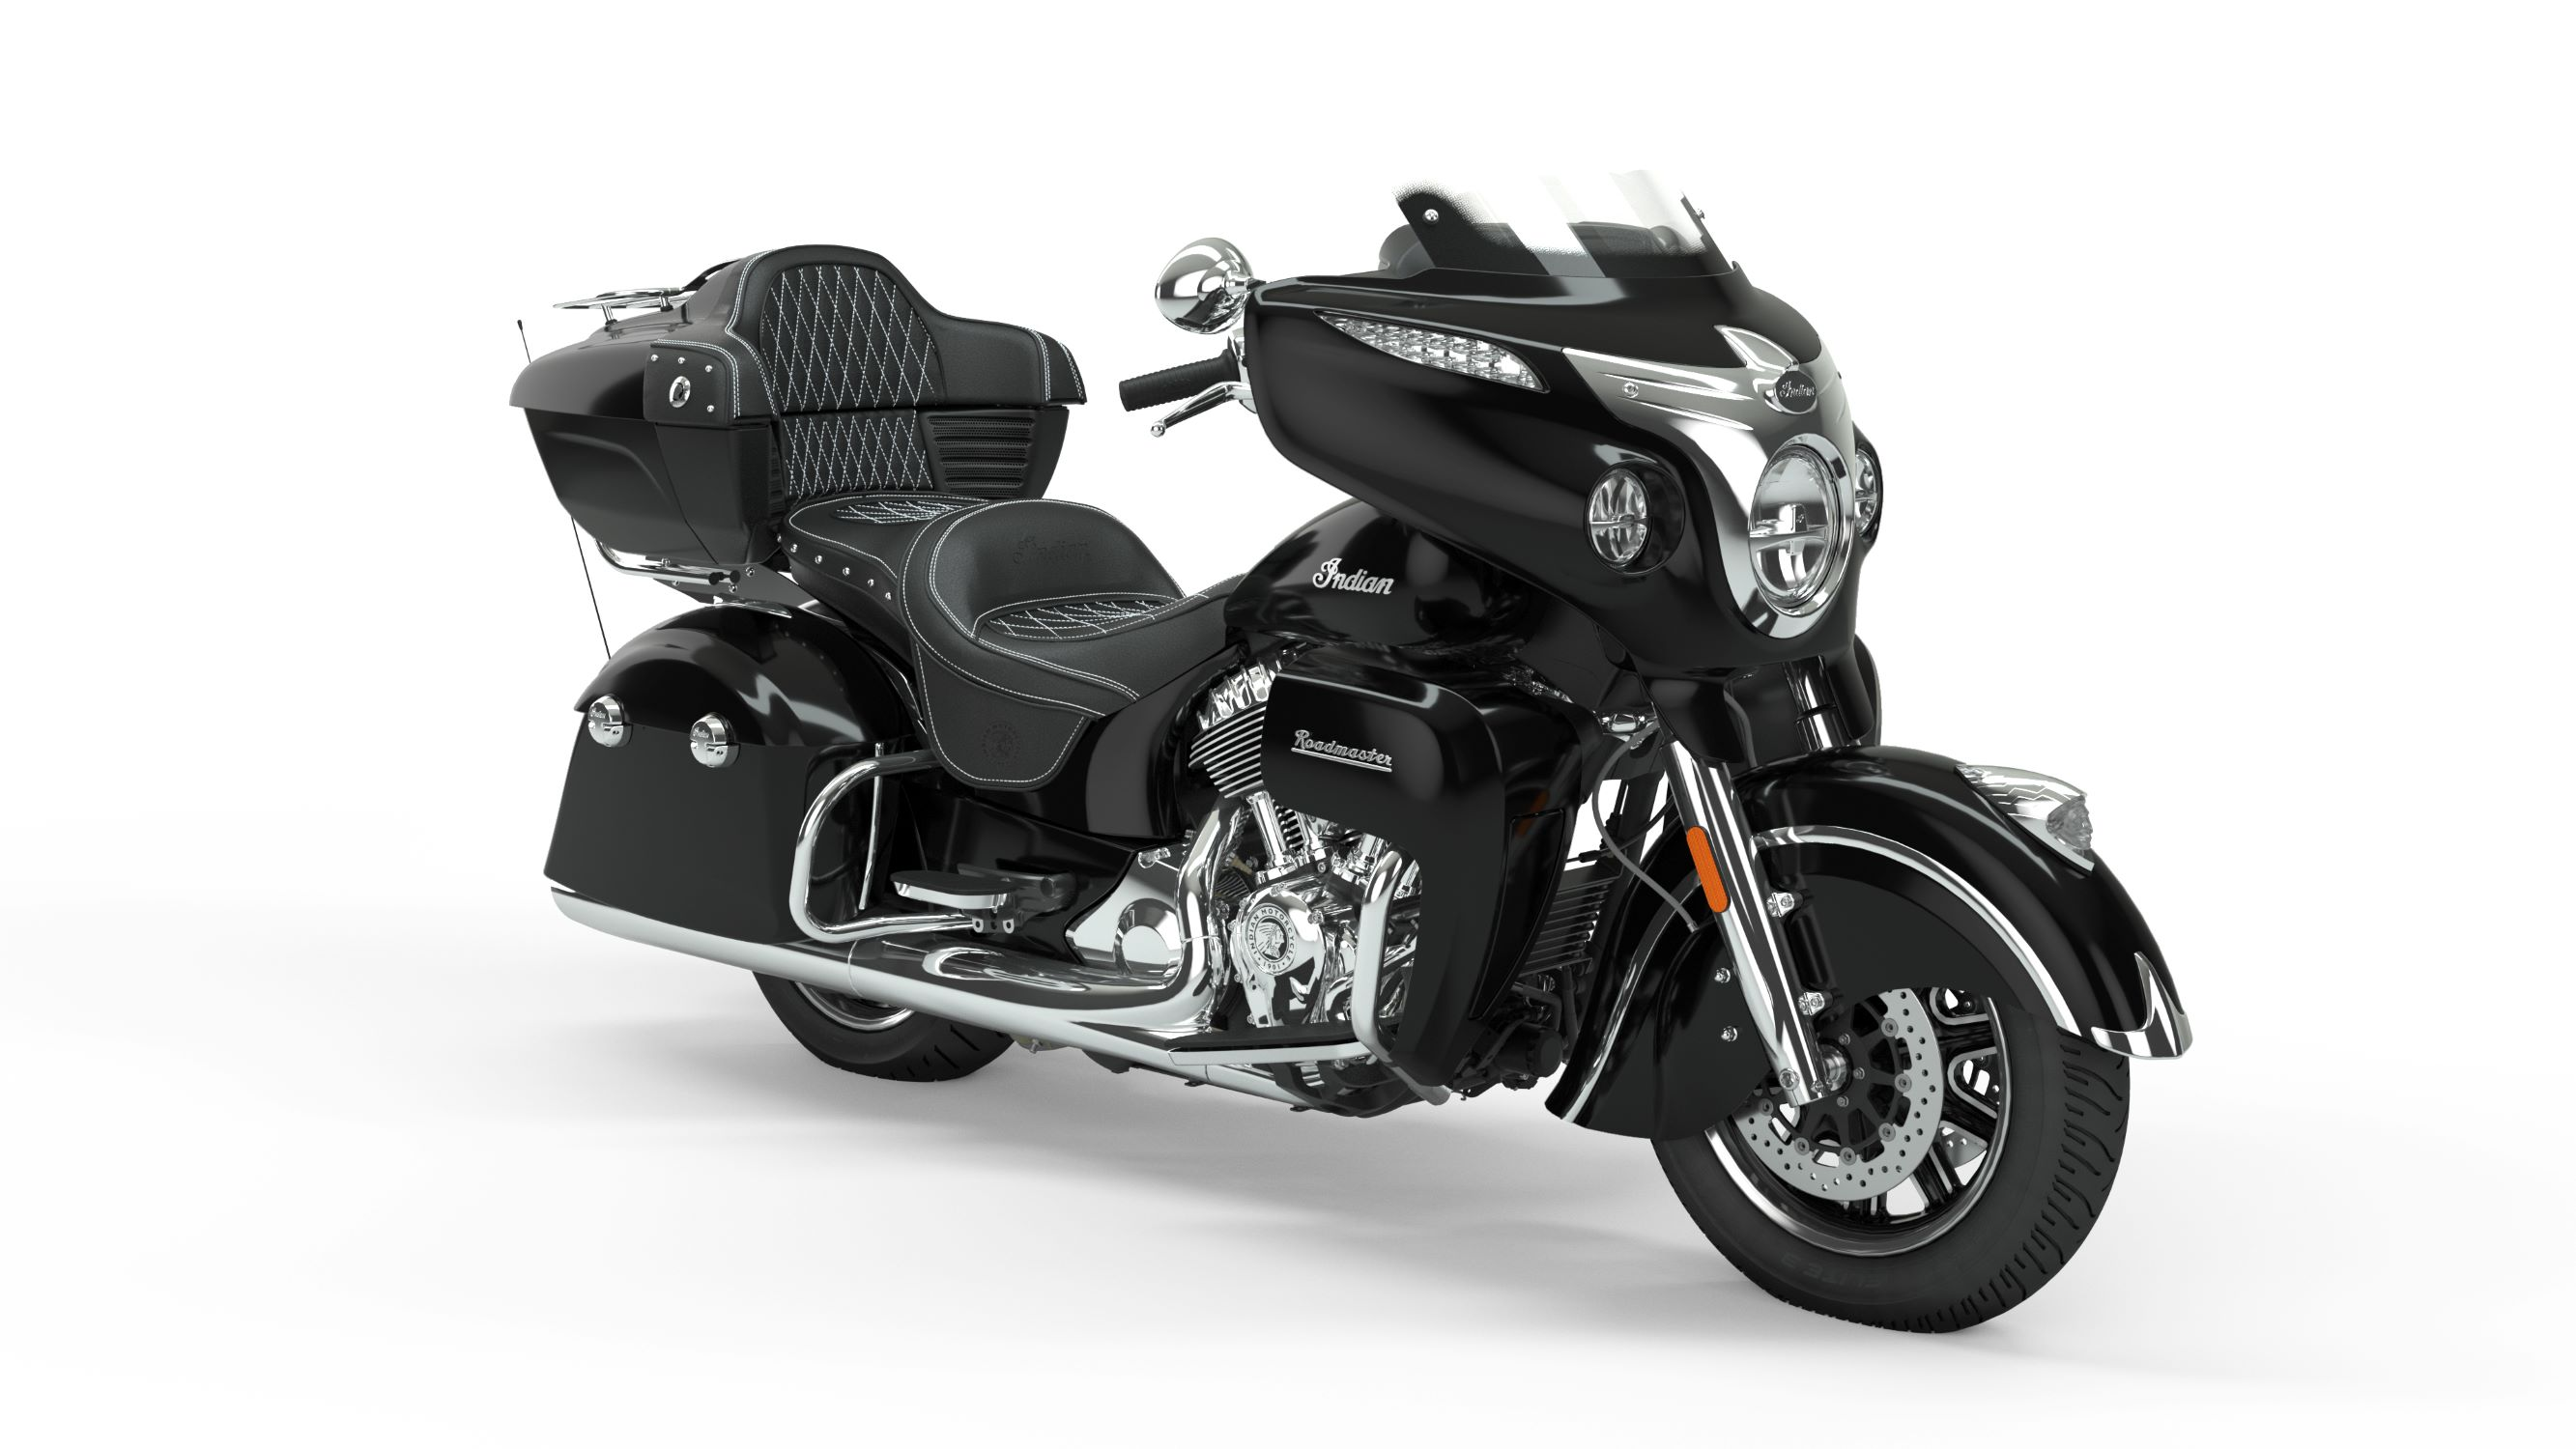 2019 Roadmaster Thunder Black Front Right 3Q